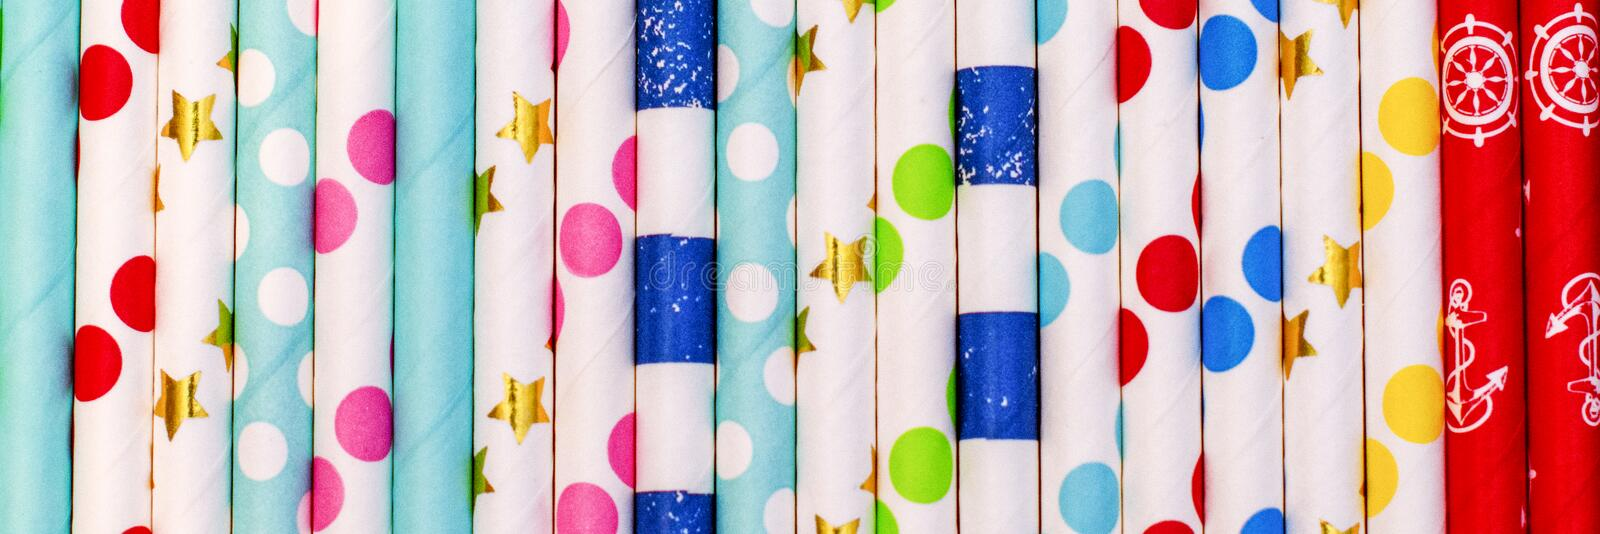 Colorful straws for cocktails. background. banner royalty free stock photography